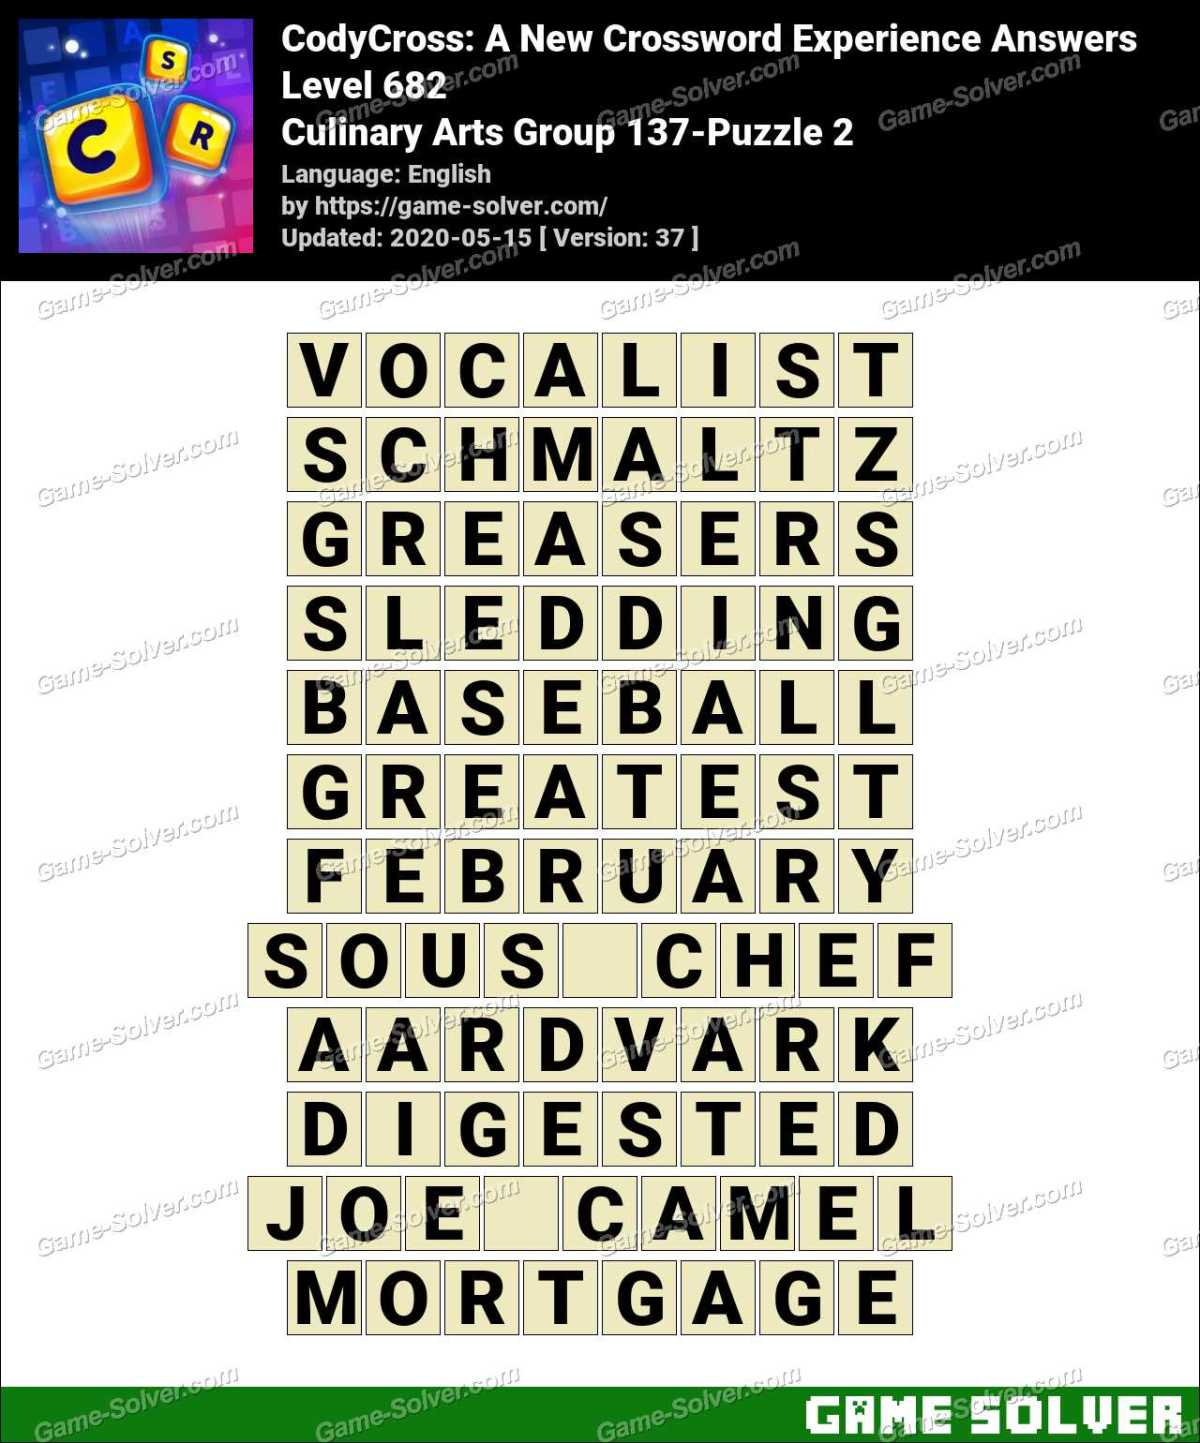 CodyCross Culinary Arts Group 137-Puzzle 2 Answers